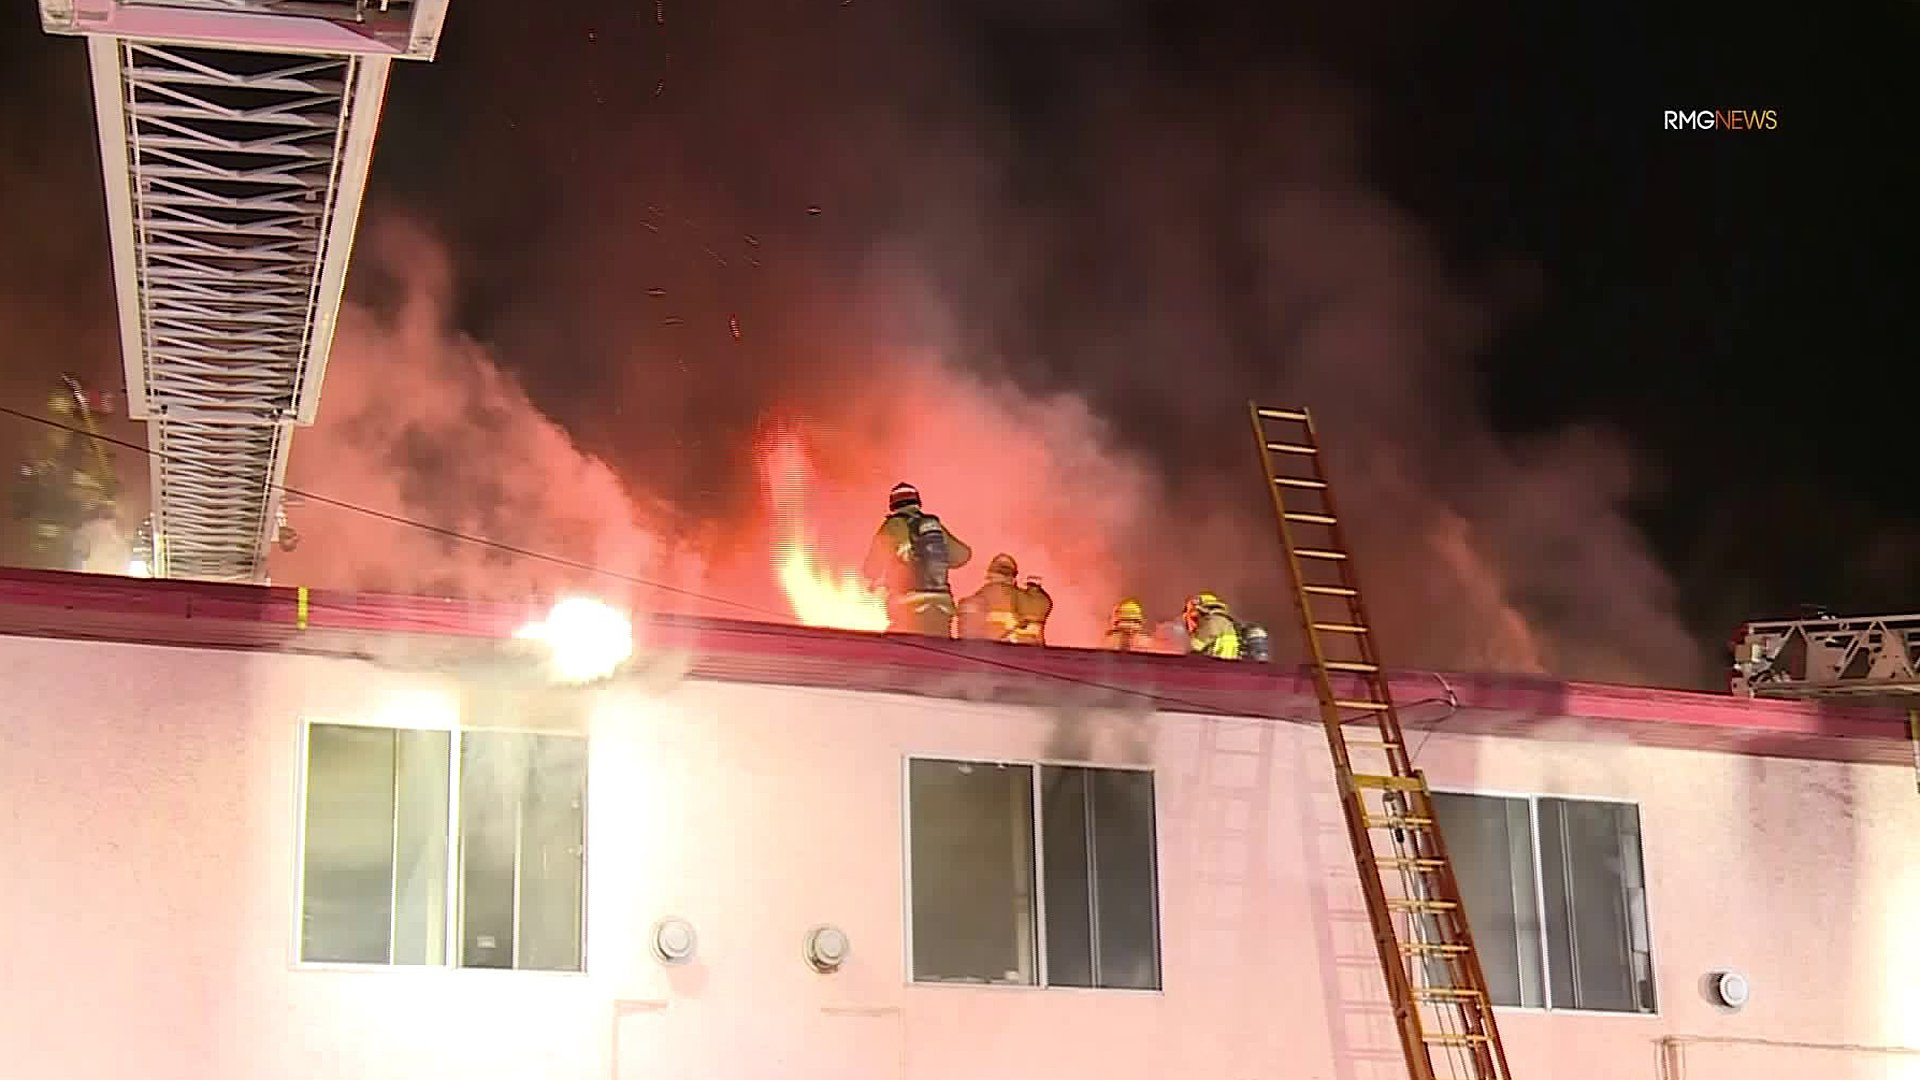 Firefighters respond to a blaze in Mid-City neighborhood on Feb. 7, 2020. (Credit: RMG News)